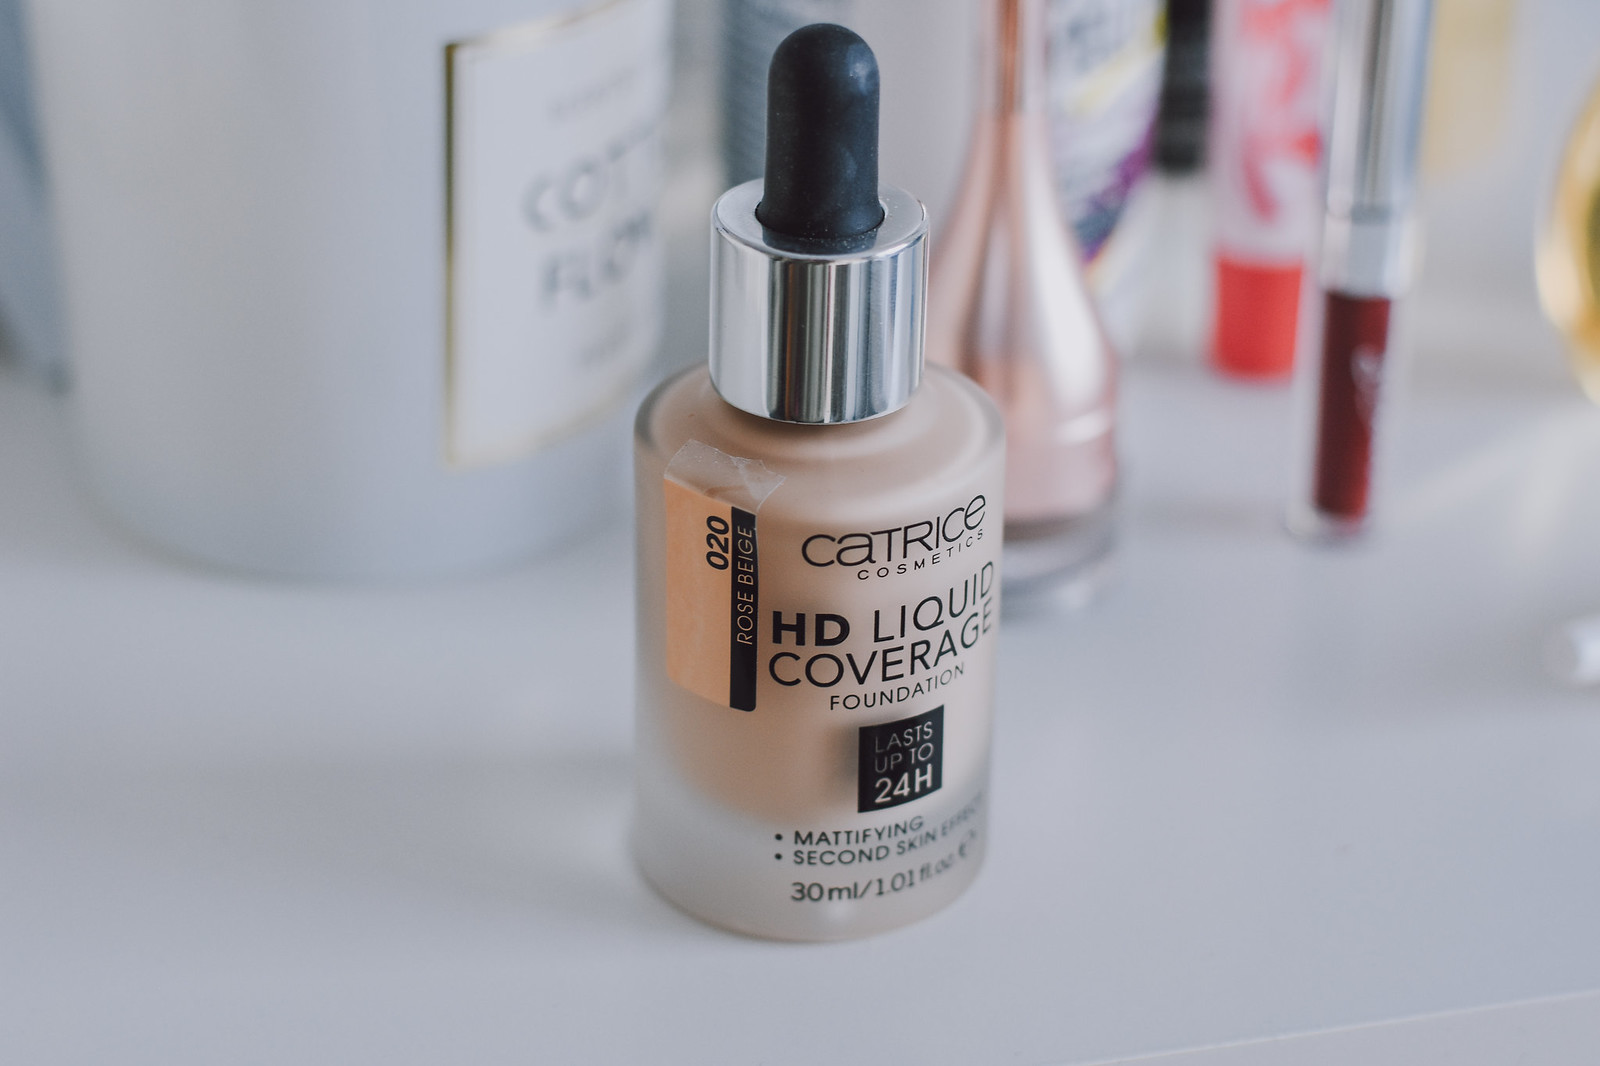 Catrice HD Liquid Coverage fundation review